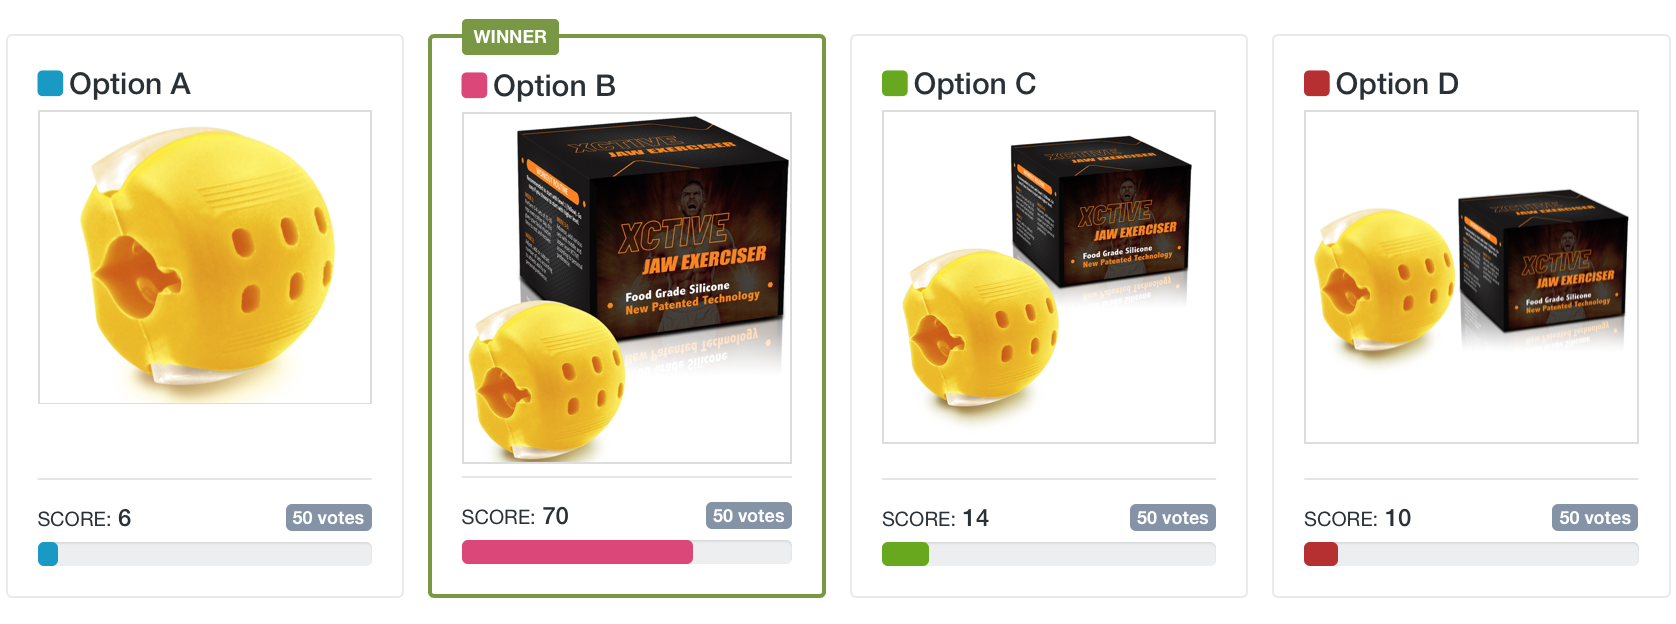 How to sell on Walmart Marketplace: PickFu poll testing four main image options for a yellow jaw exerciser